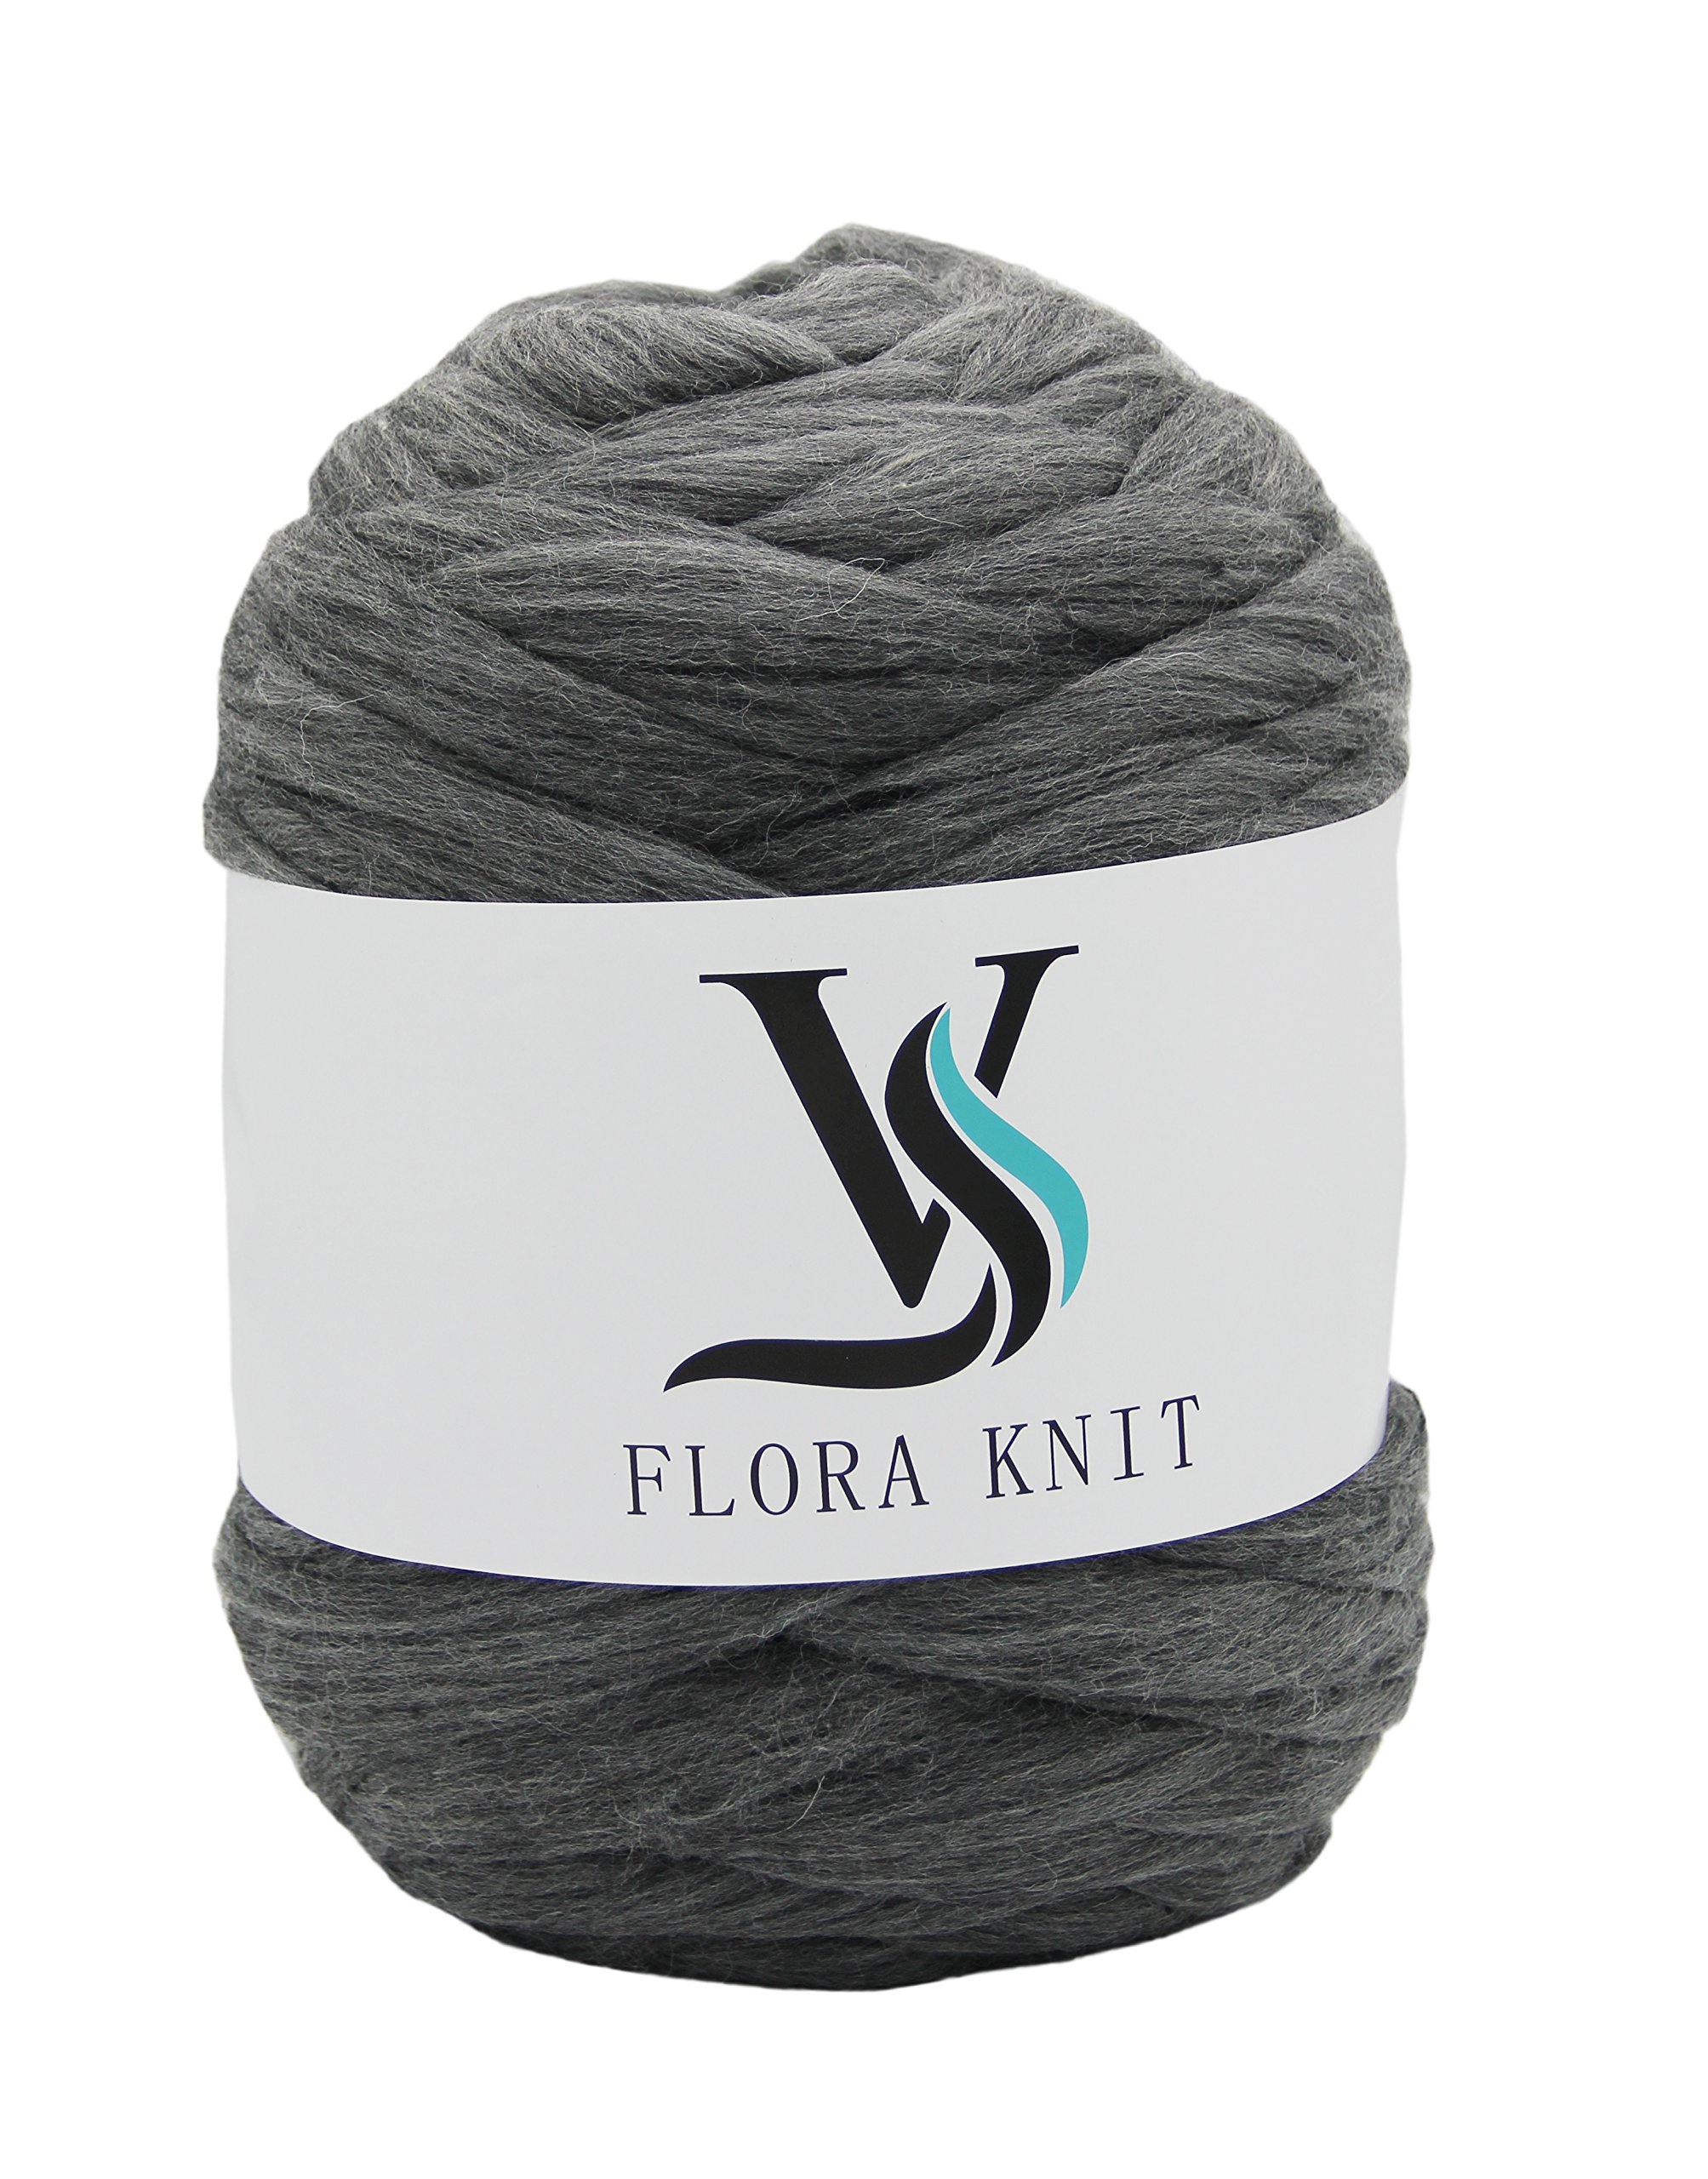 100% Wool Super Chunky Yarn - Non-Mulesed Merino Wool Roving Top,Extreme Big for Arm Knitting Knit Blankets Throws (4.4 LBS -88in, Gray) by FLORAVOGUE (Image #1)